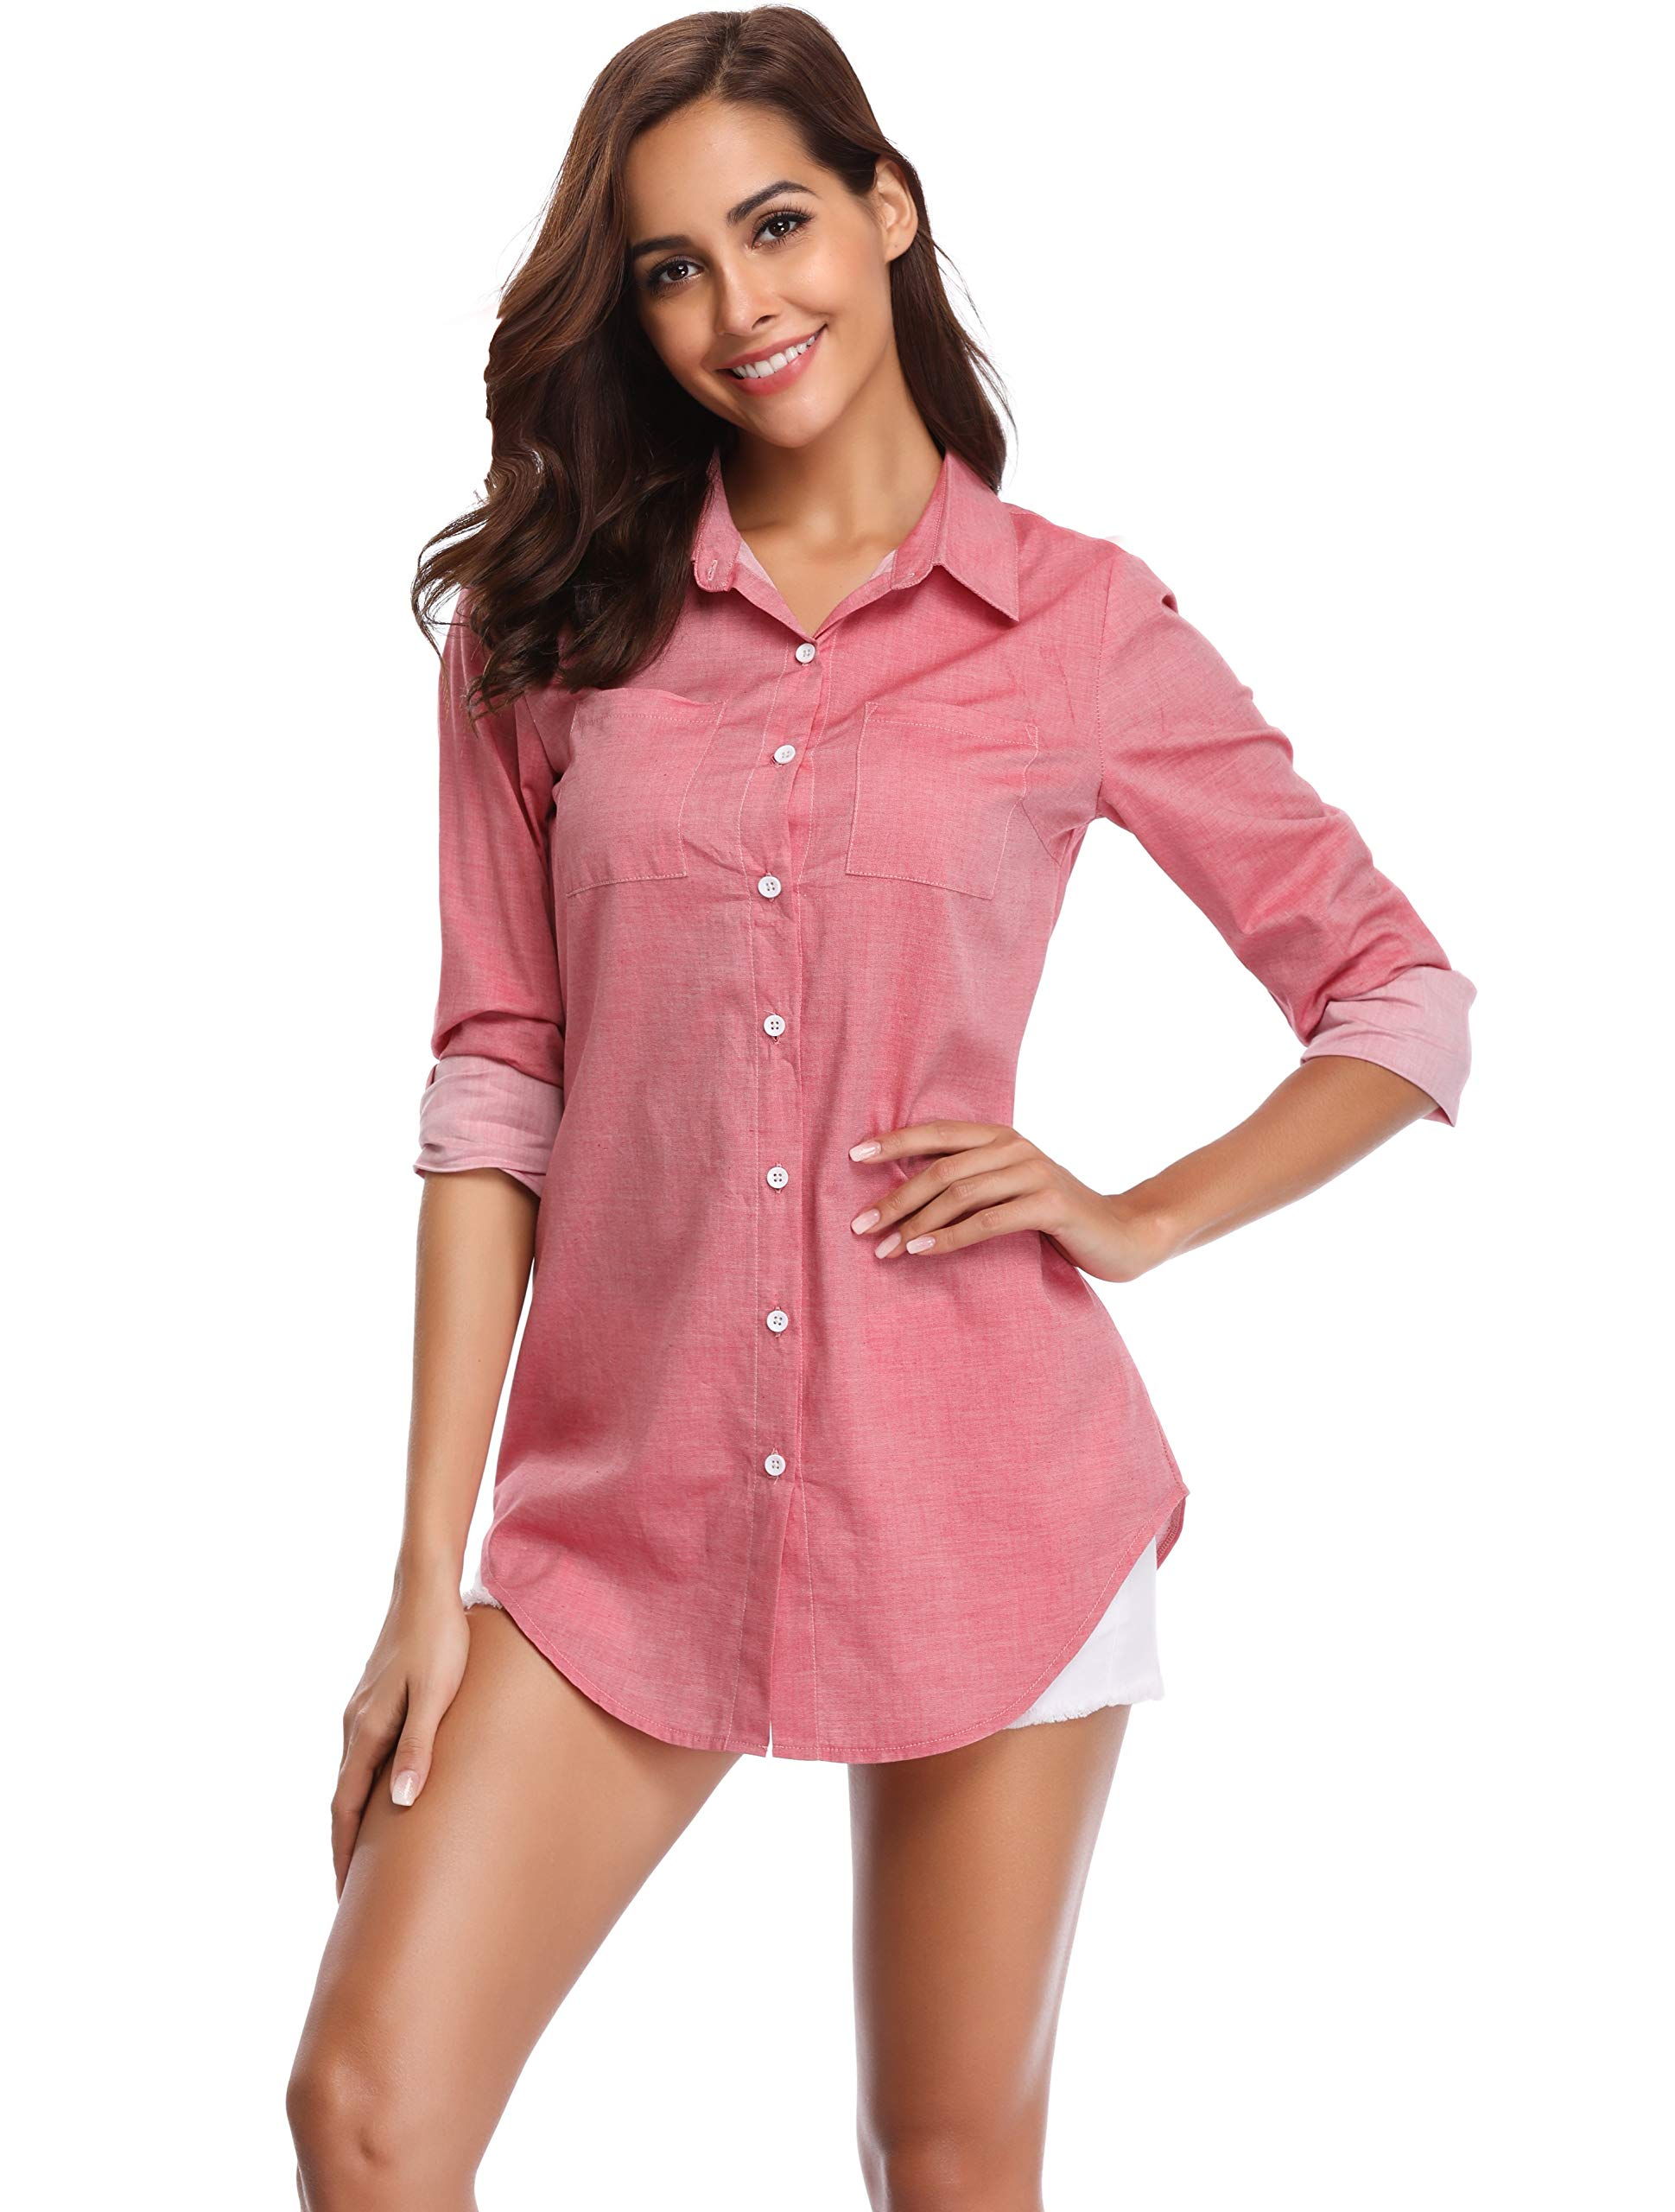 Argstar Women's Chambray Button Down Shirt Long Sleeve Jeans Top,Light Red,Large (US 12-14)